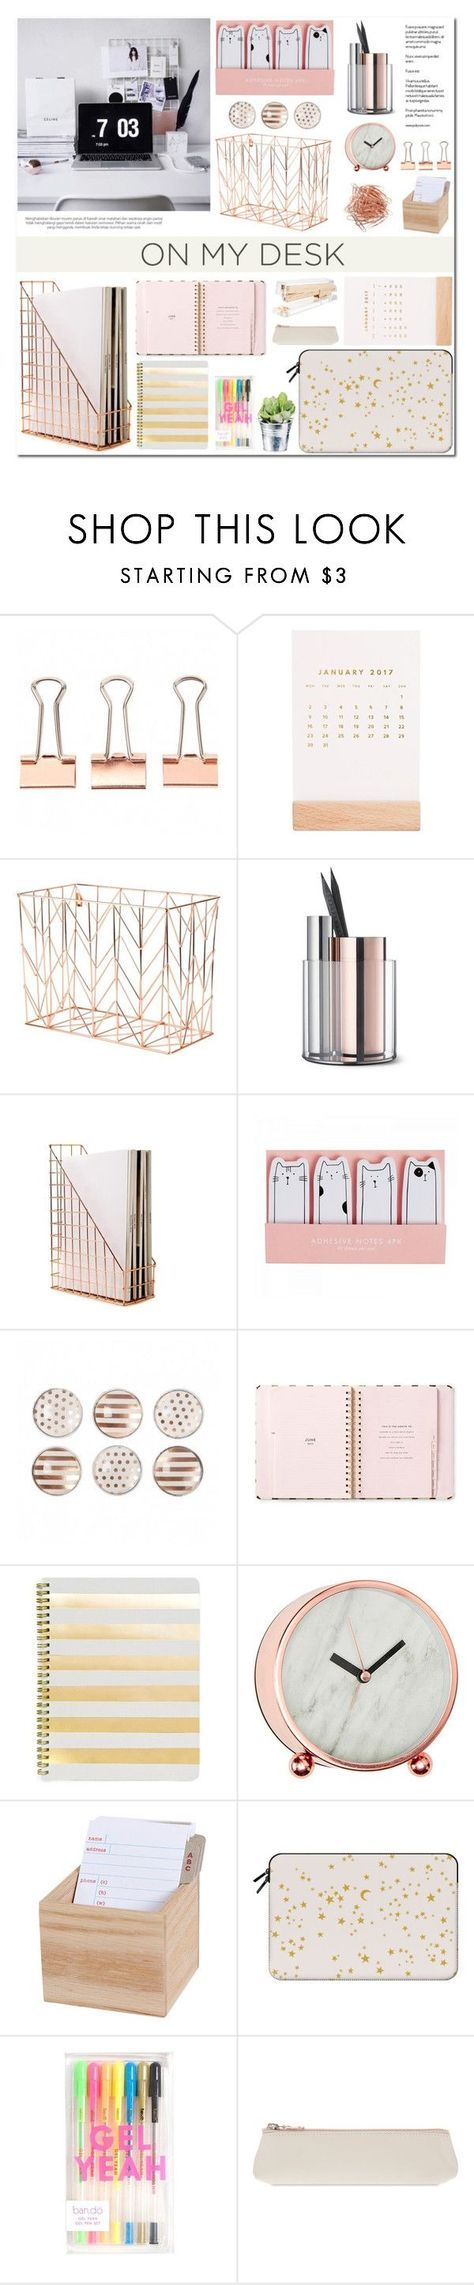 """""""On My Desk"""" by makeupgoddess ❤️ liked on Polyvore featuring interior, interiors, interior design, home, home decor, interior decorating, Thrive, U Brands, Kate Spade and Beyond Object"""